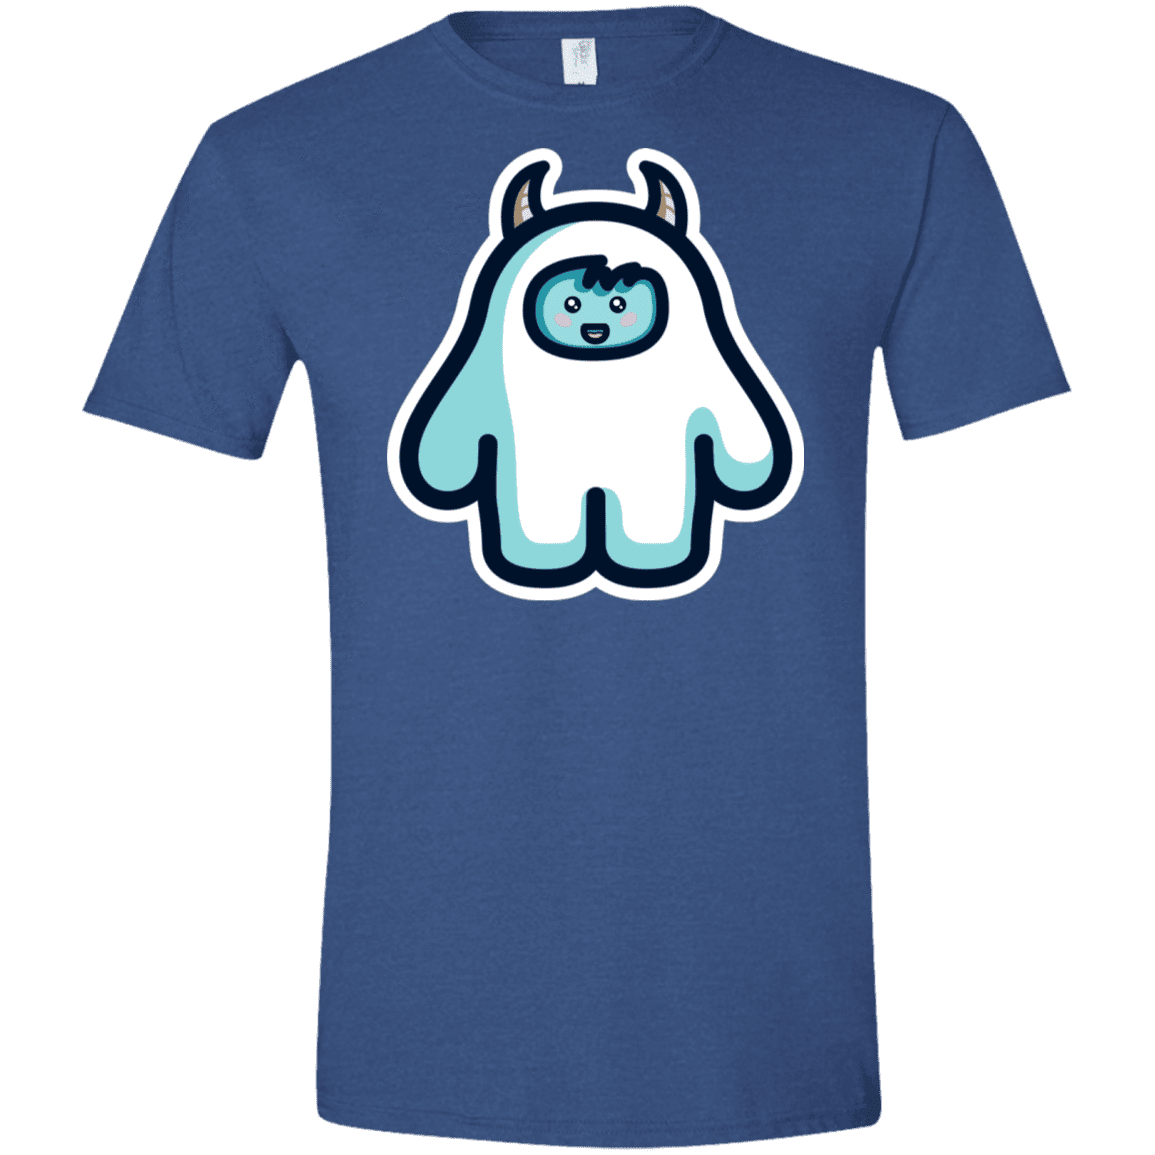 T-Shirts Heather Royal / X-Small Kawaii Cute Yeti Men's Semi-Fitted Softstyle